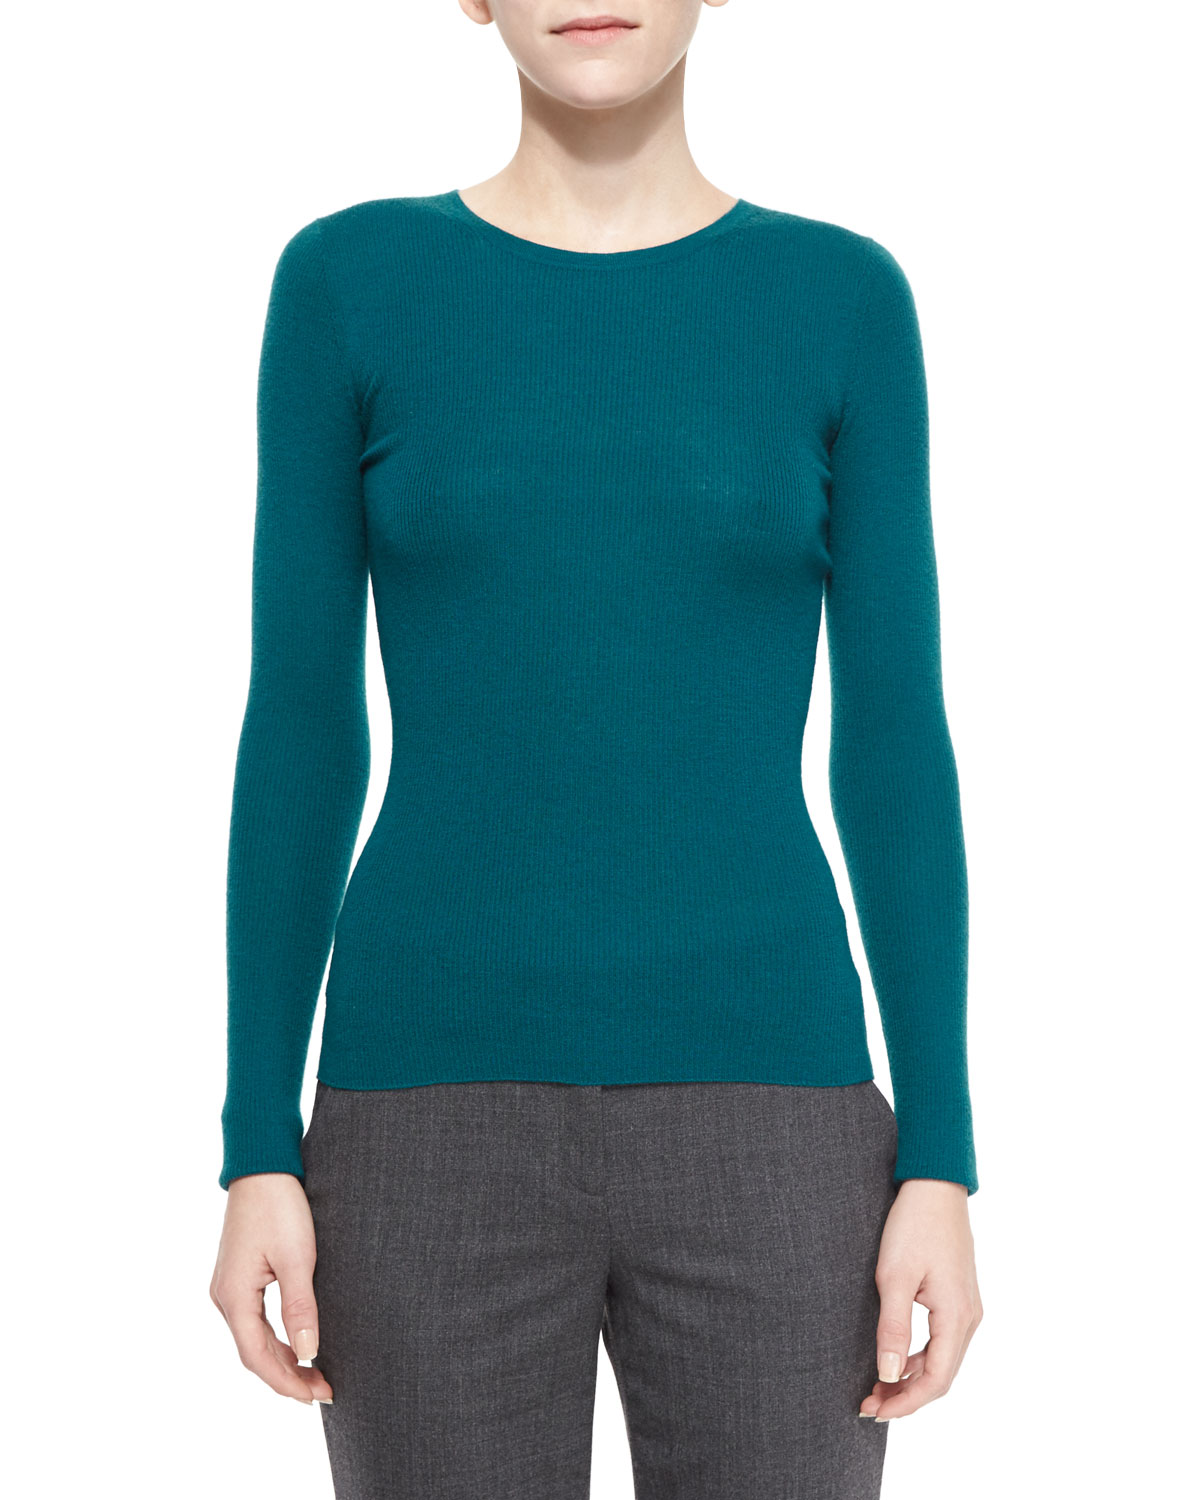 Long-Sleeve Ribbed Cashmere Sweater, Peacock